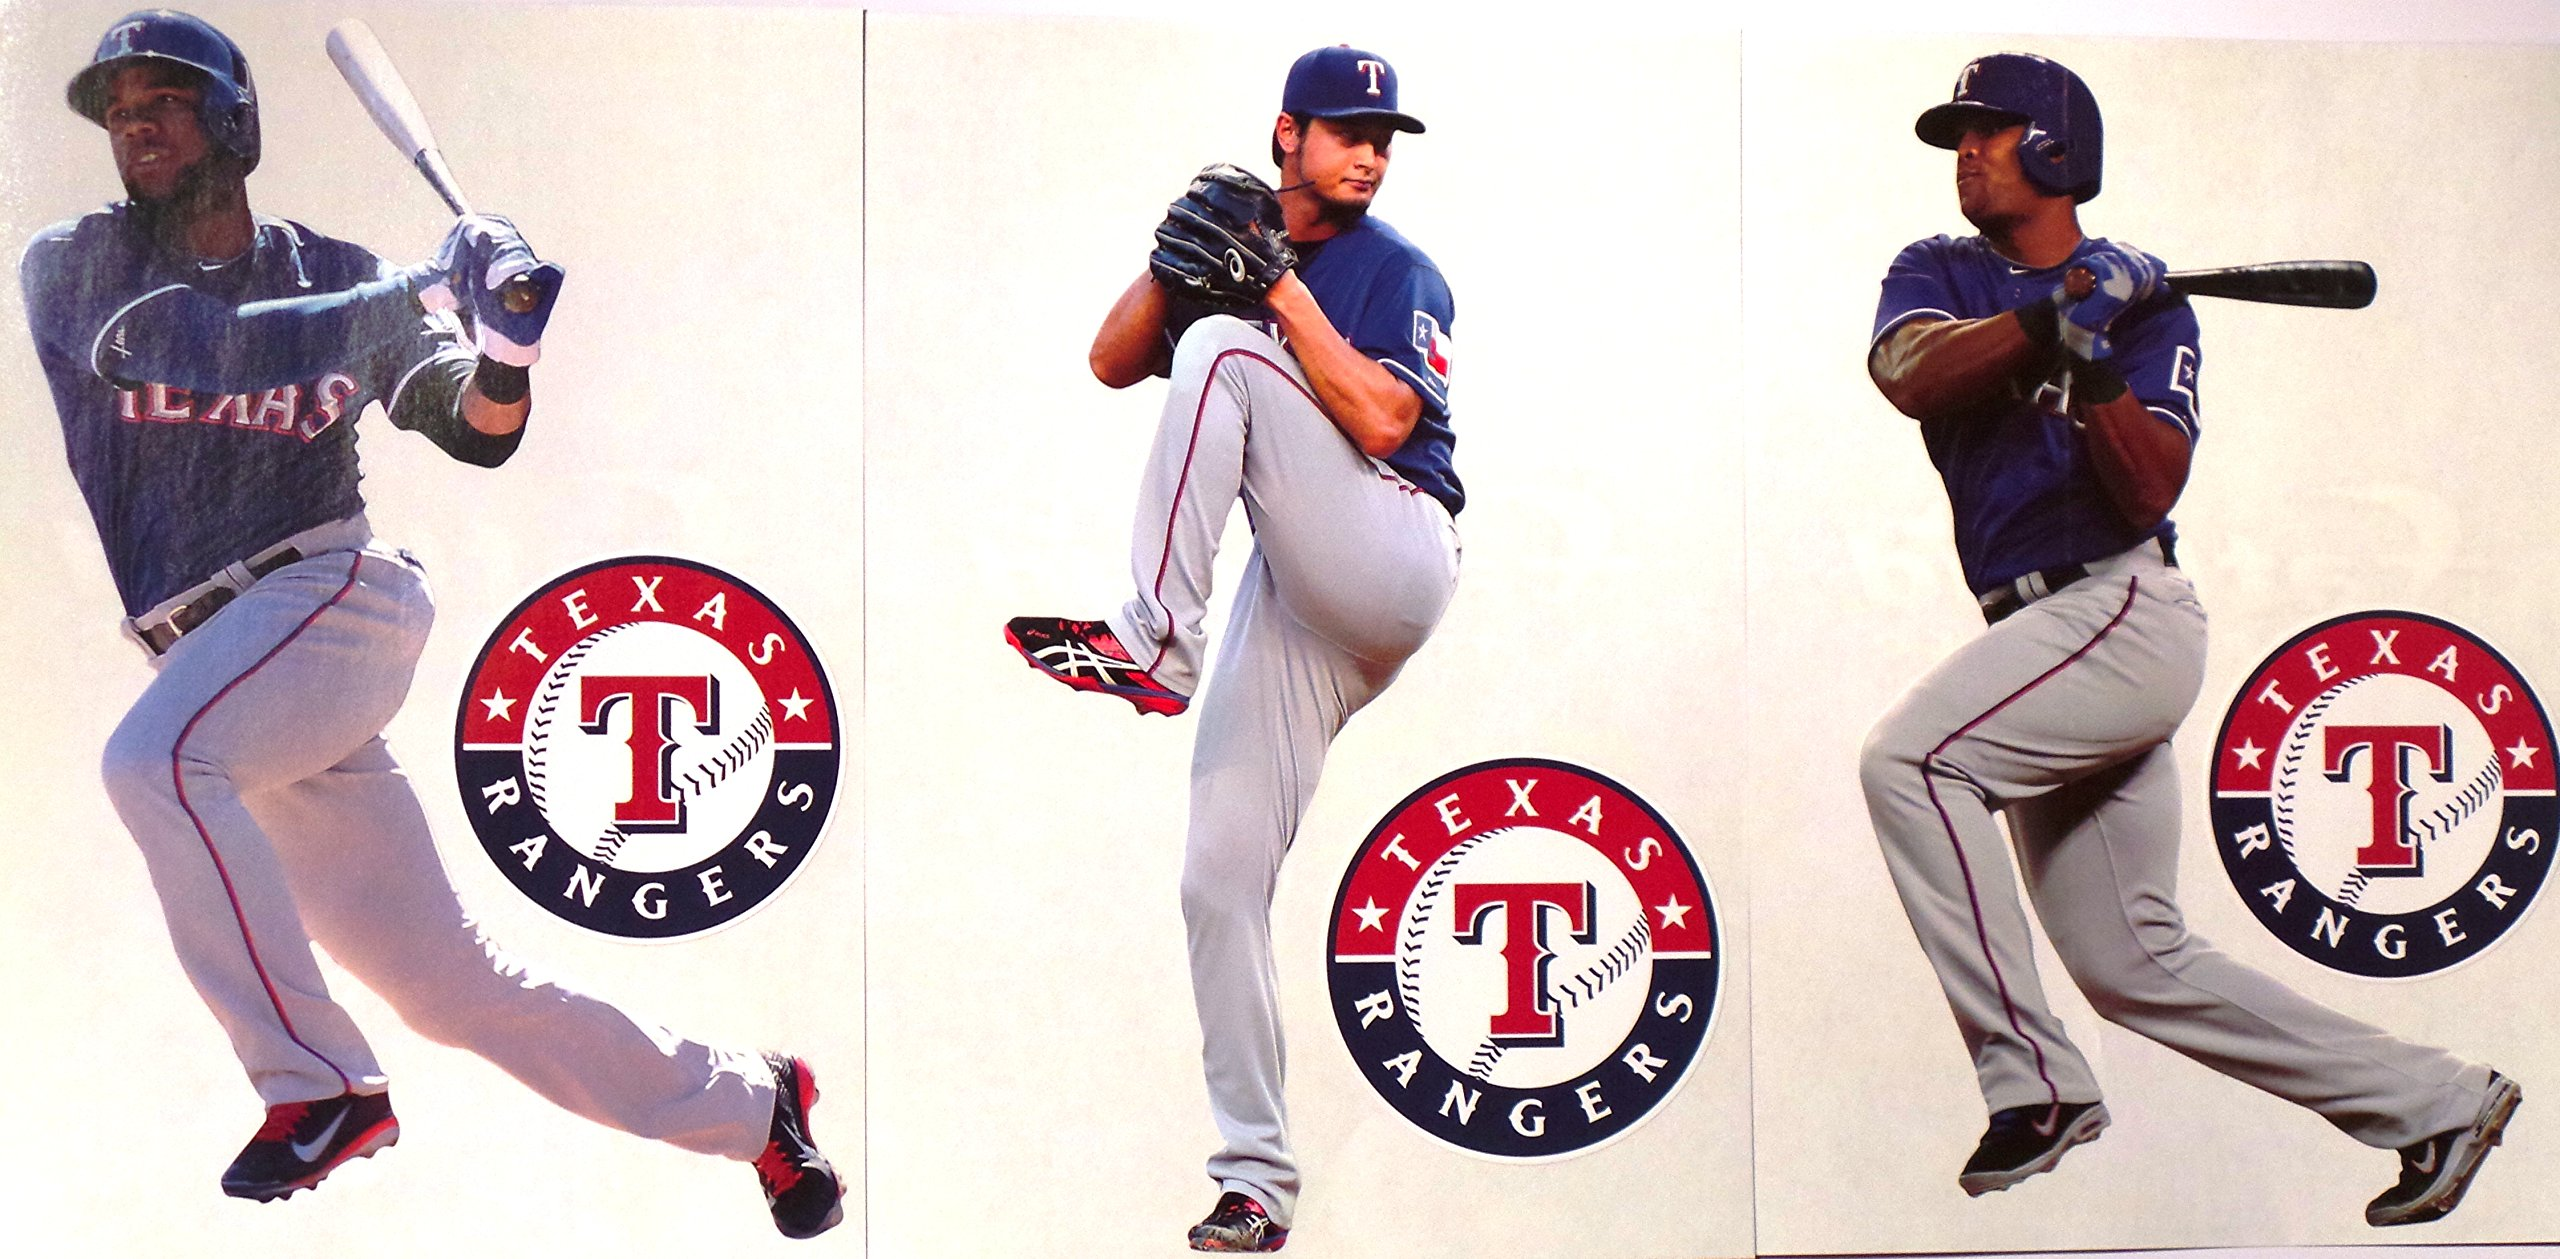 """Texas Rangers FATHEAD Team Set of 12 Official MLB Vinyl Wall Graphics (6 Players + 6 Rangers Logo). Each Player Graphic is 7"""" INCHES TALL"""